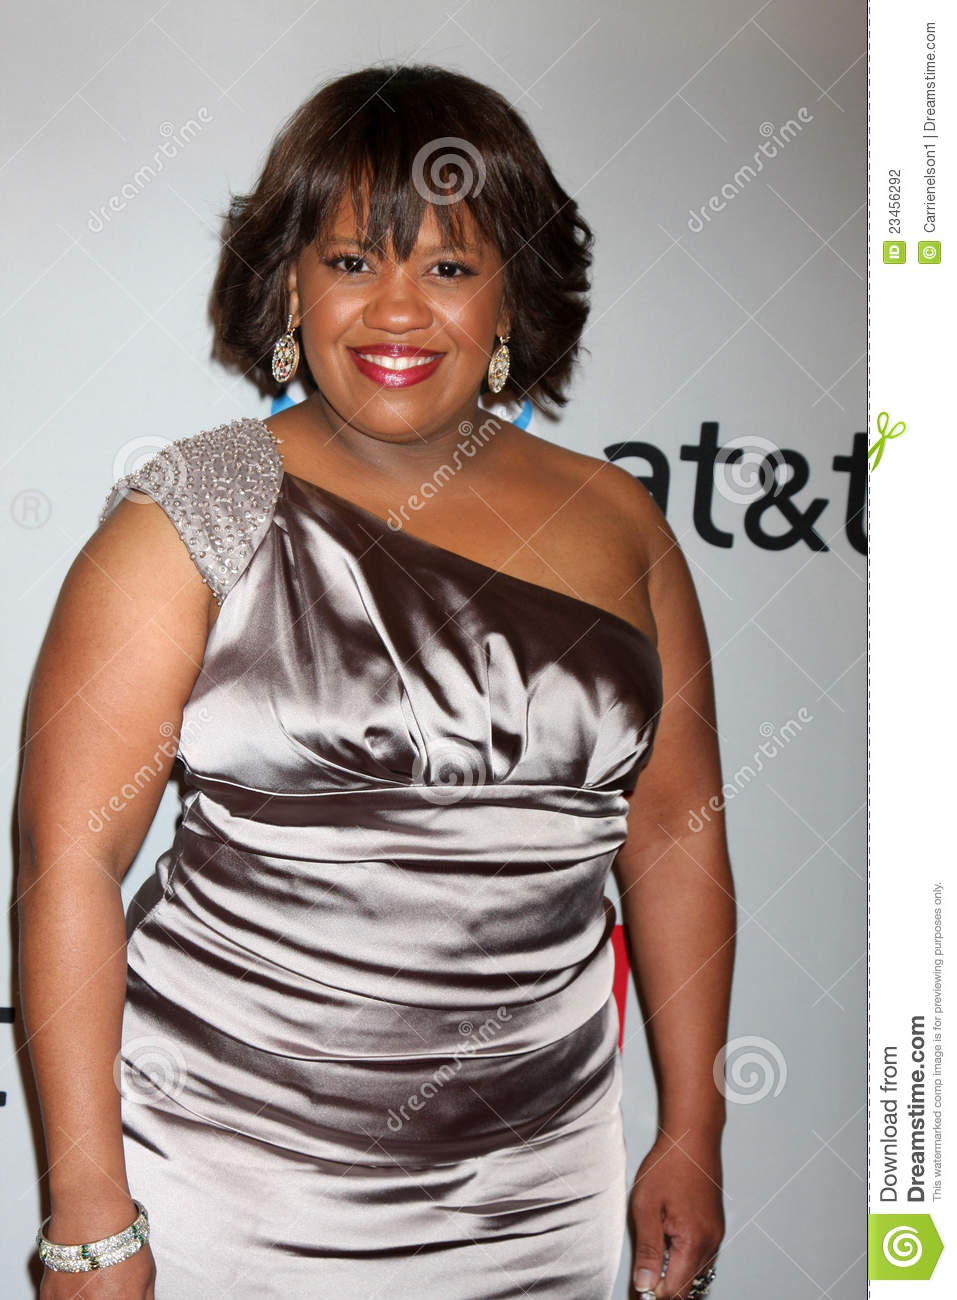 chandra wilson sex and the city